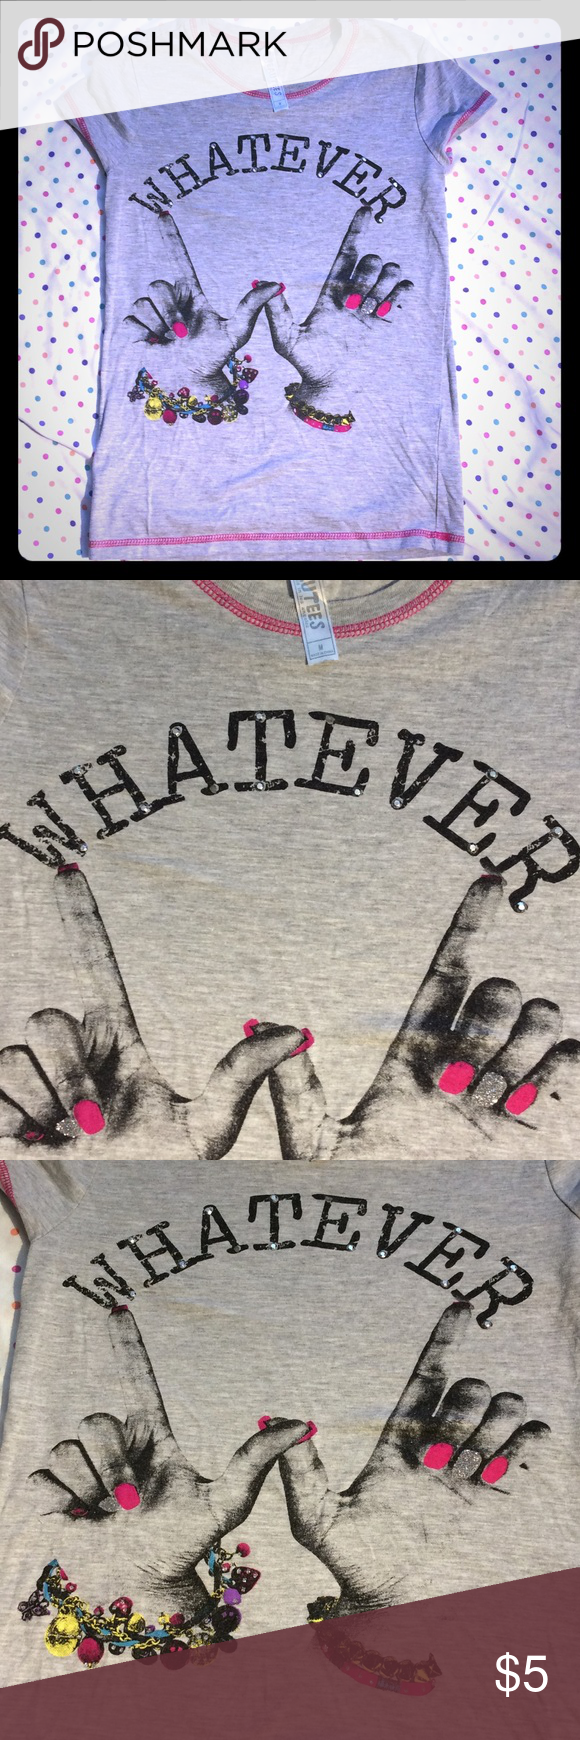 "Girls ""Whatever"" tee By Beautees. Whatever is missing 2 studs (view pic) but in otherwise good condition. Beautees Shirts & Tops Tees - Short Sleeve"